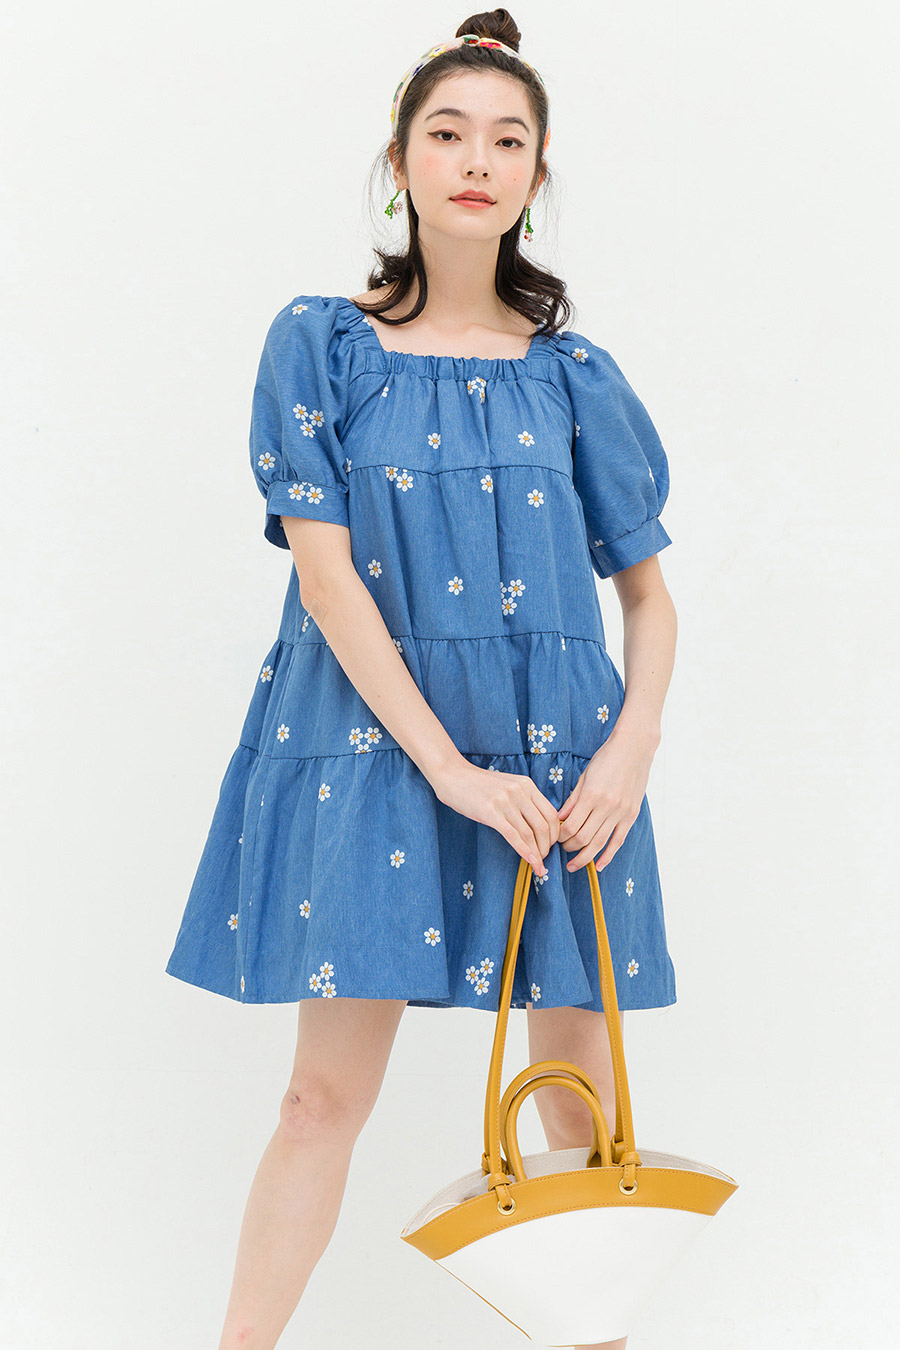 VERDA DRESS - DENIM WASH